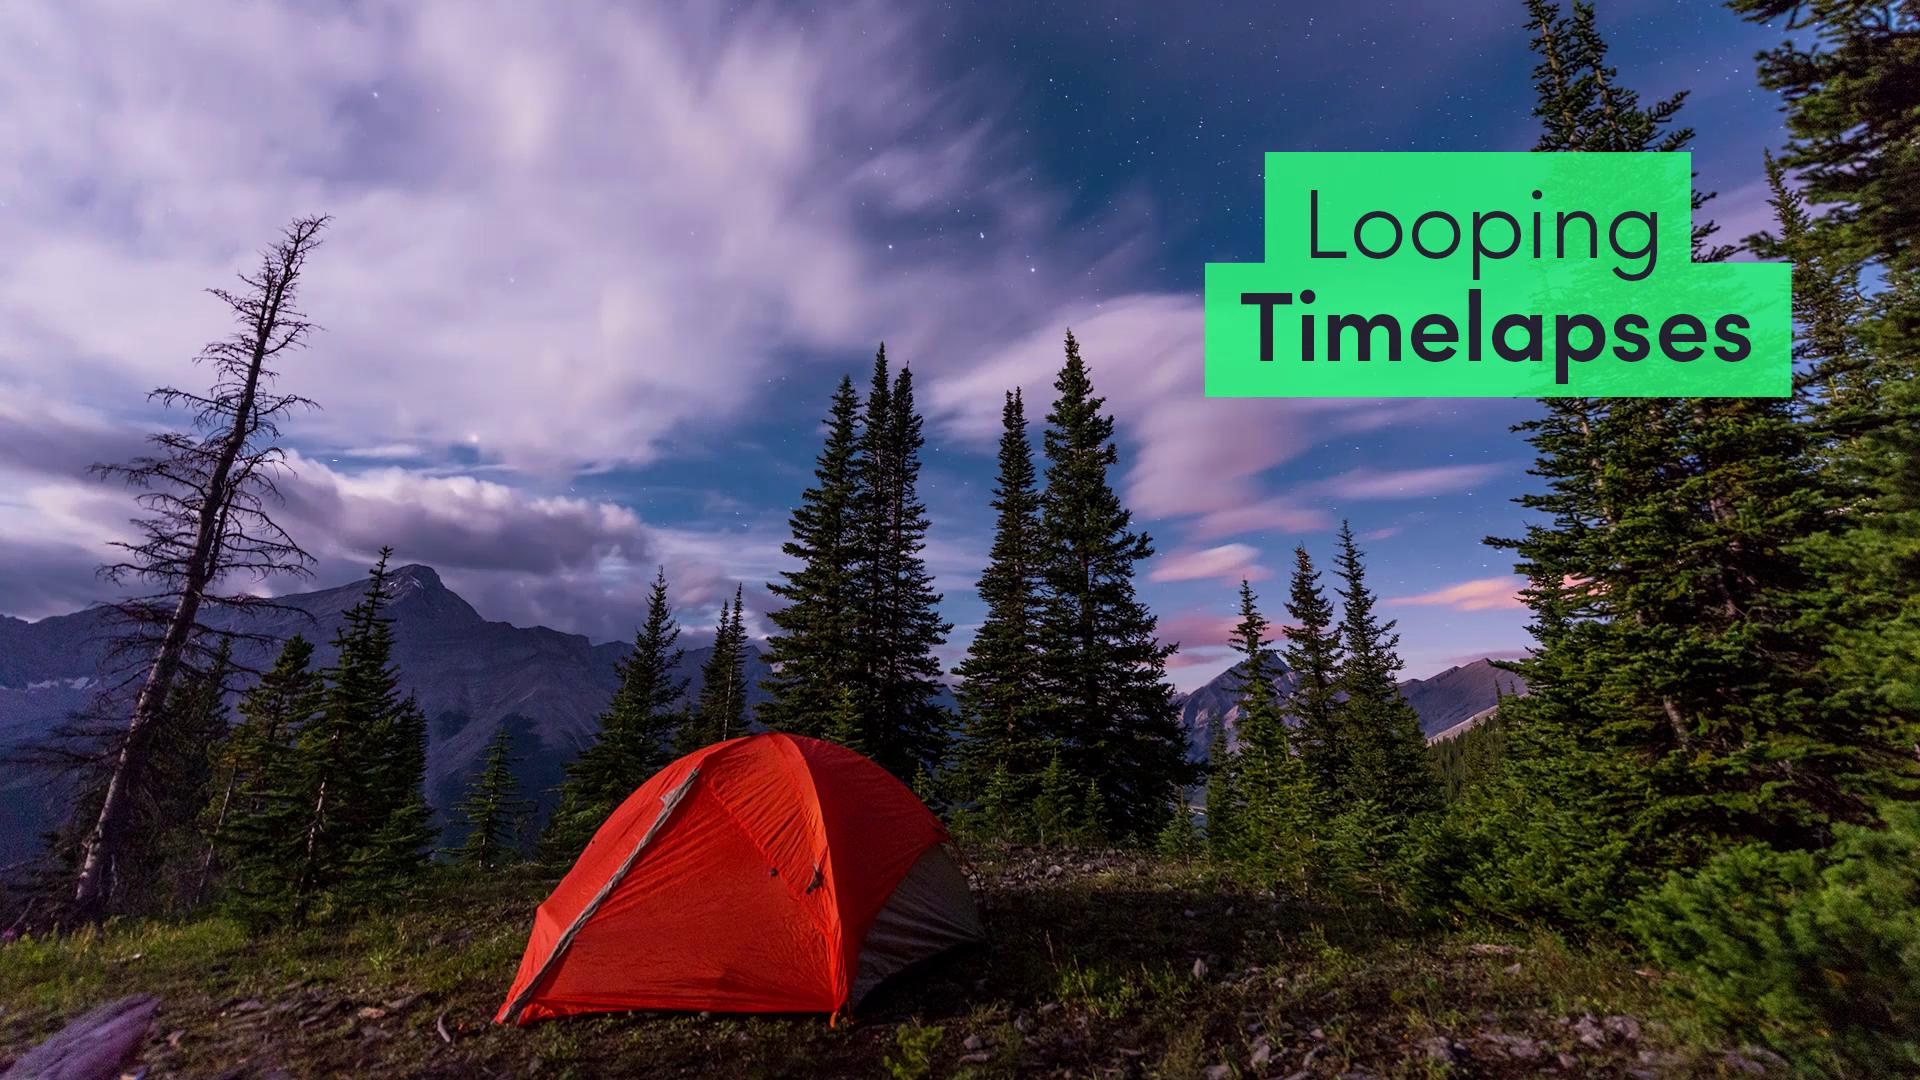 How to Make Your Time Lapse Loop Seamlessly - In the Loop | In the Loop